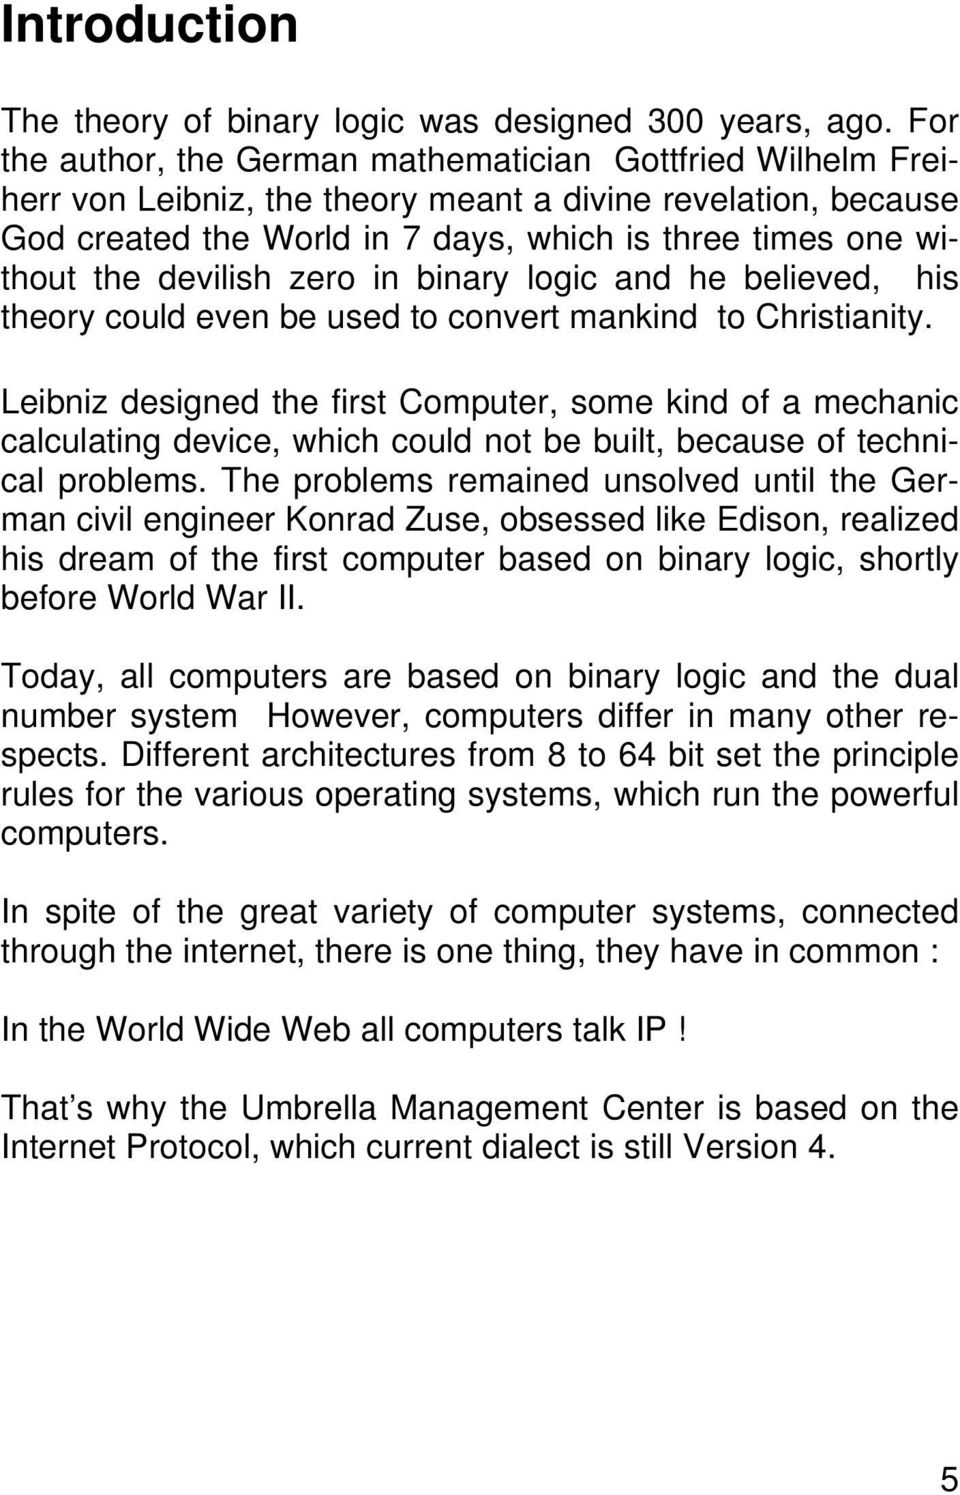 devilish zero in binary logic and he believed, his theory could even be used to convert mankind to Christianity.